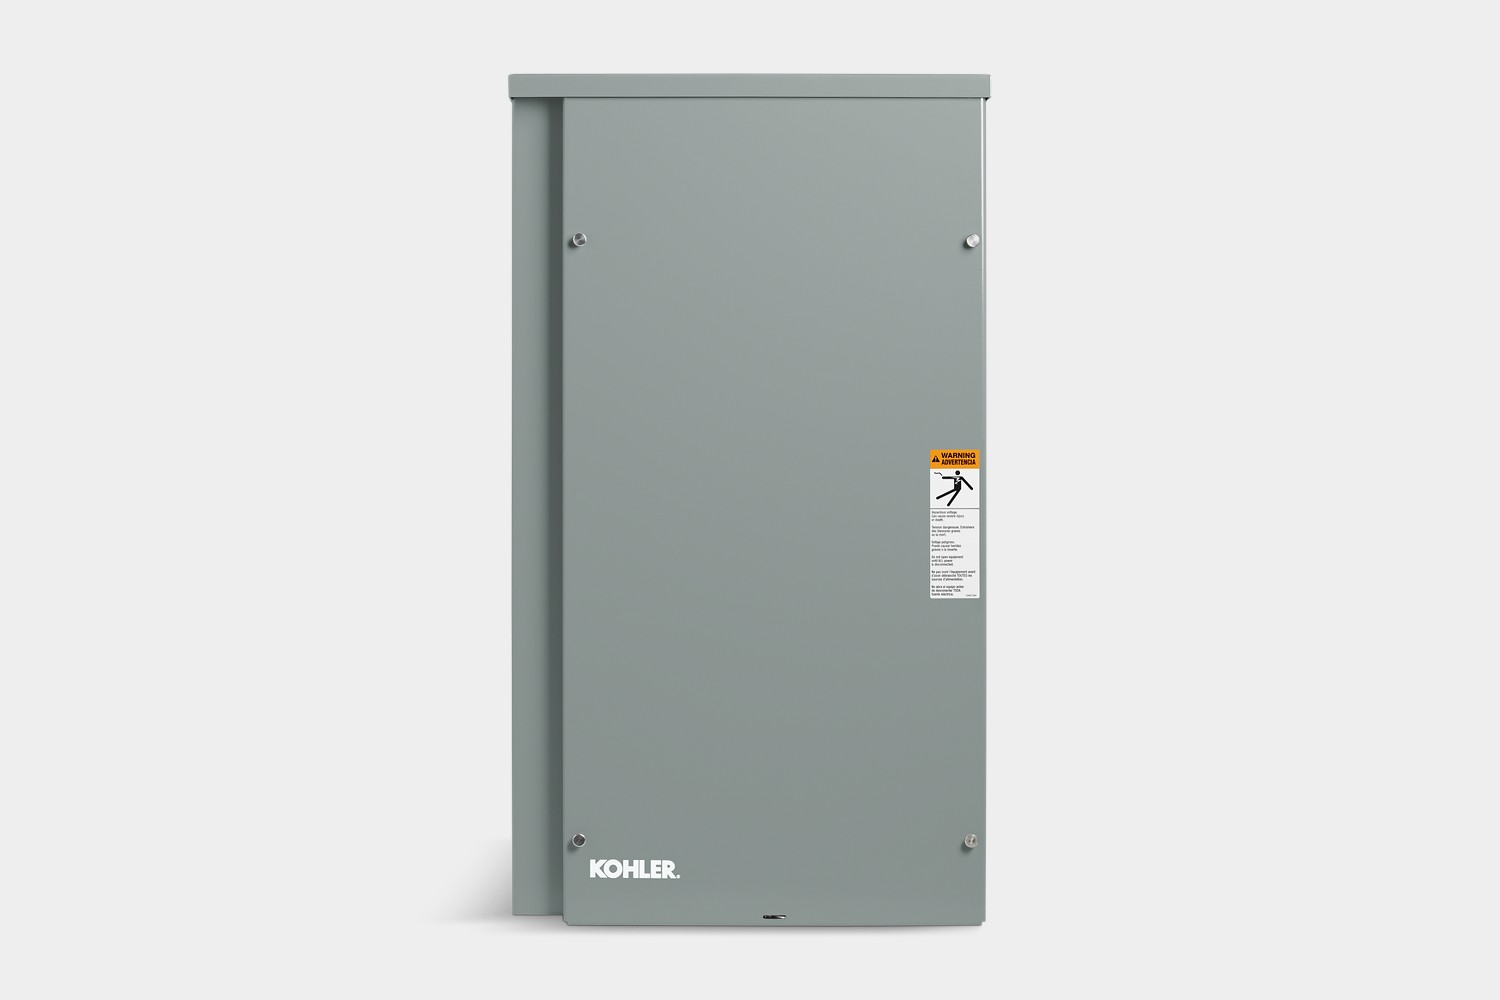 Kohler Generators Rxt Ats 150 Amp Service Entrance Automatic Generator Transfer Switch Wiring Off Position